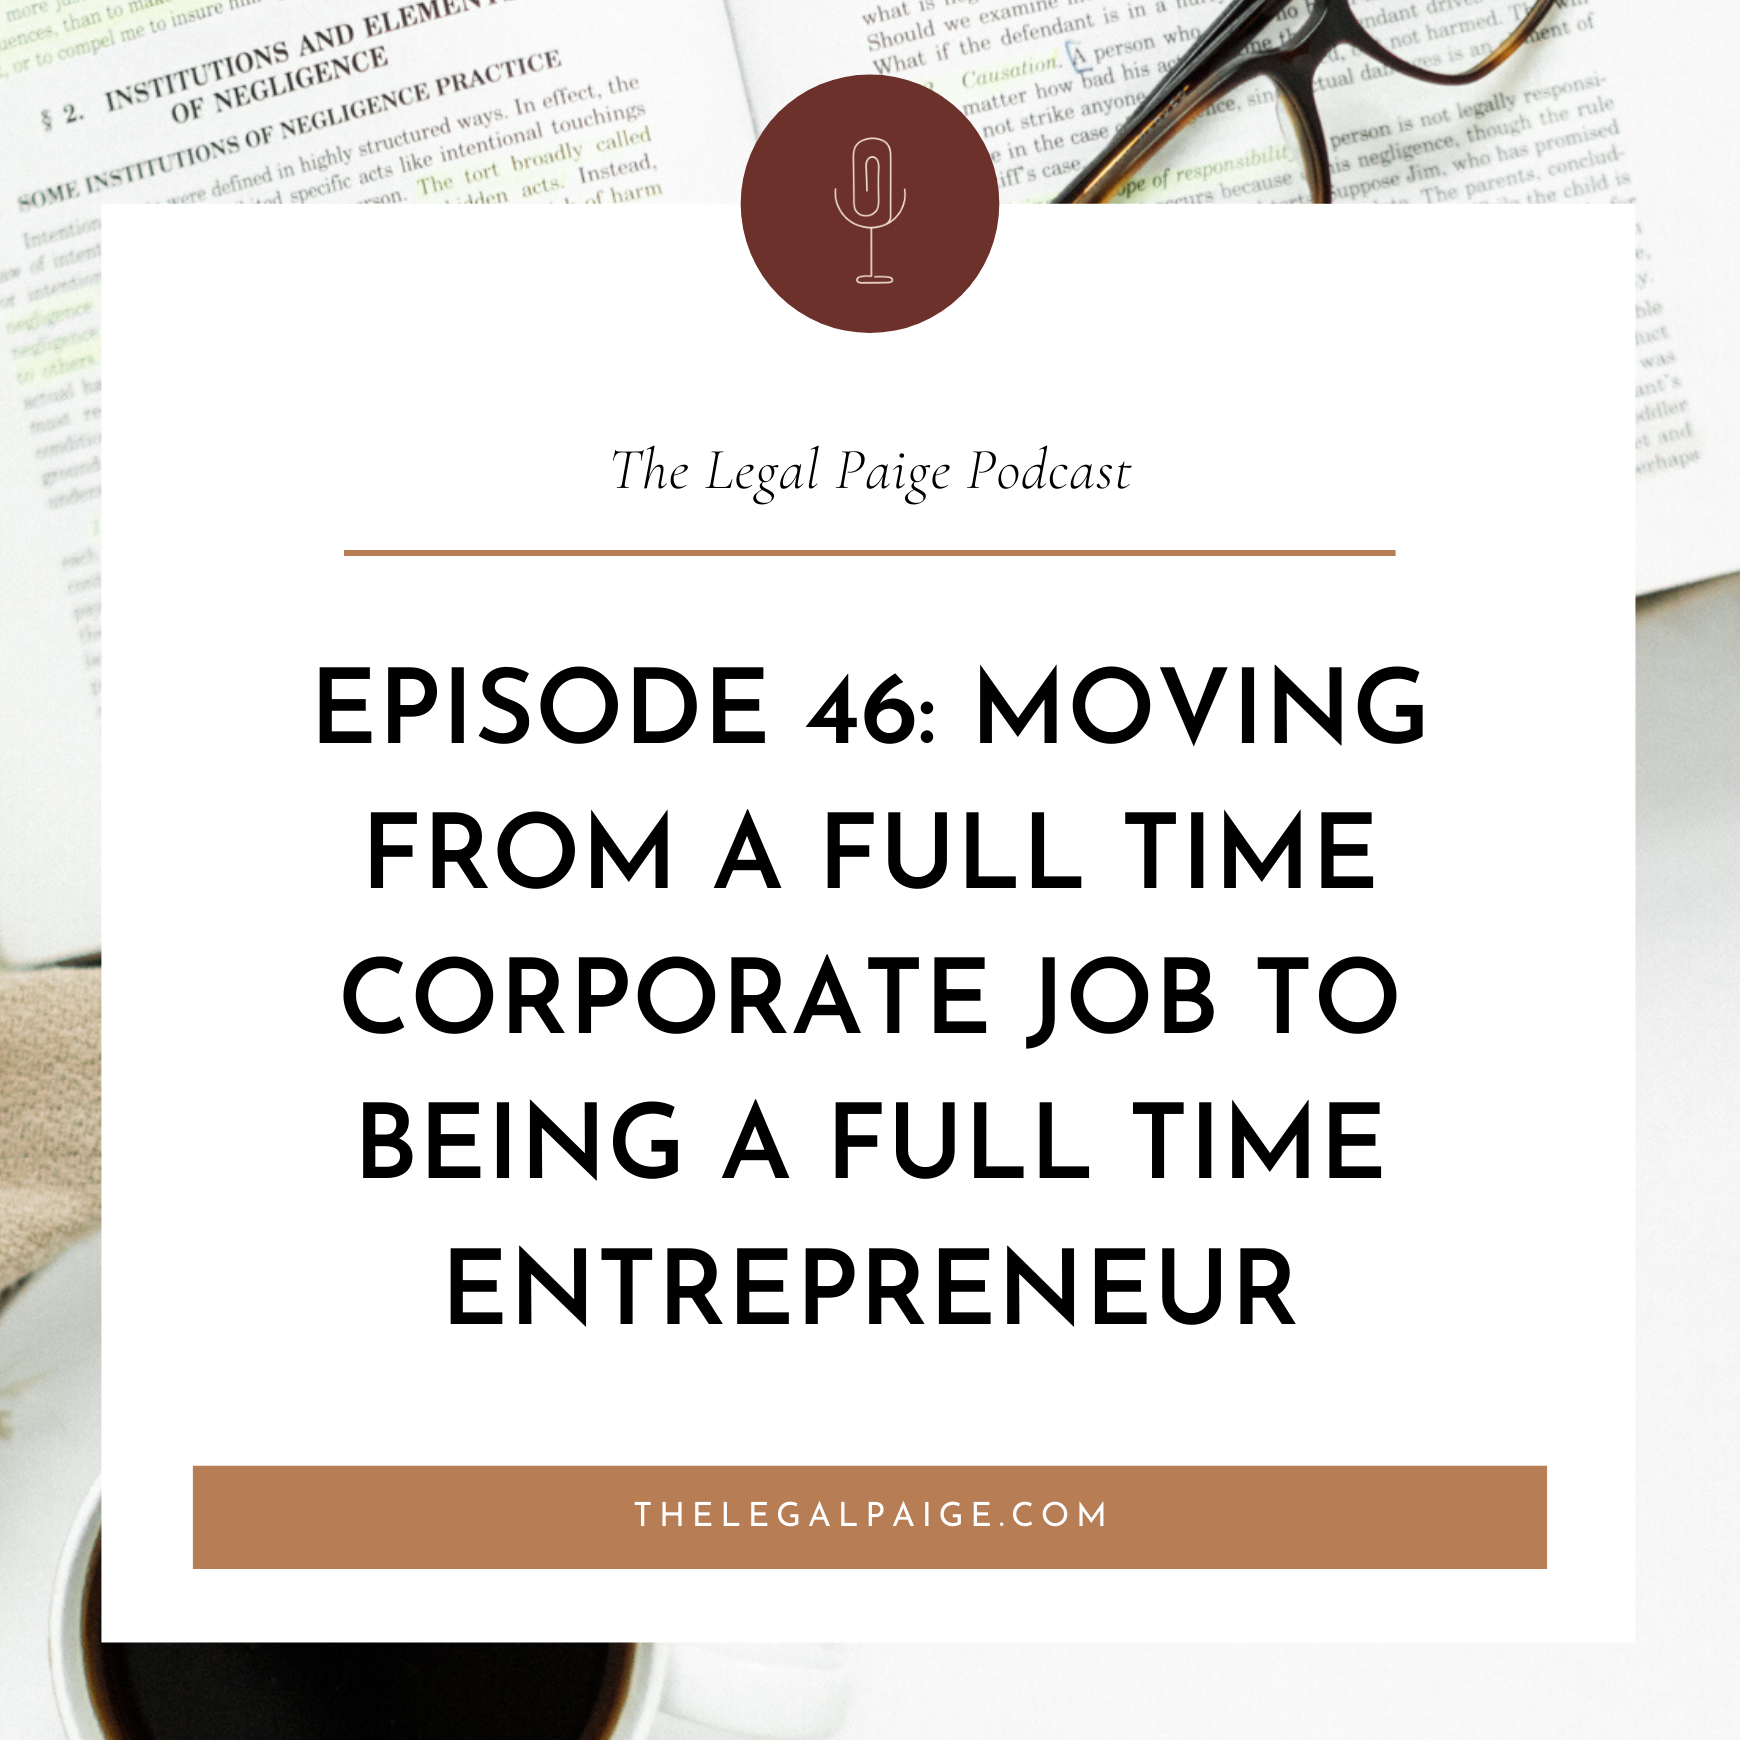 Ep 46: Moving from A Full Time Corporate job to Being A Full Time Entrepreneur with Jaine Kershner